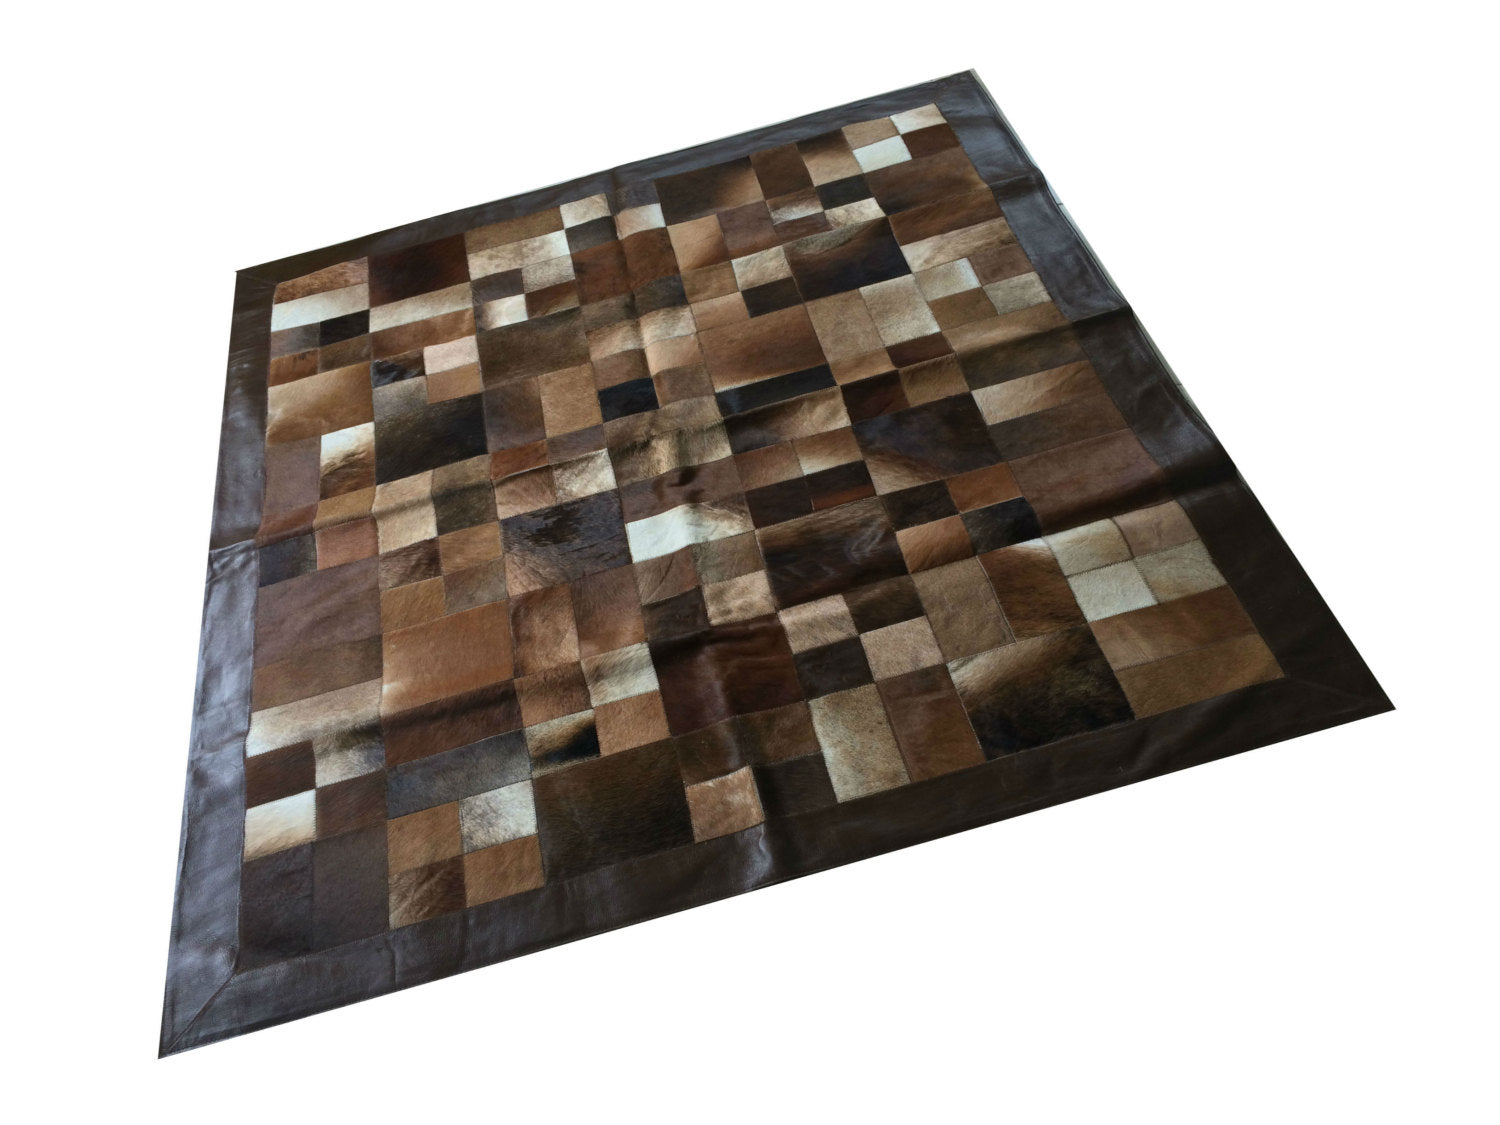 "Cowhide Patchwork Rug.  BROWN MULTIFORM!! Amazing Design! 5.2 ft x 6.6 ft! Leather Frame 4 "". A245"